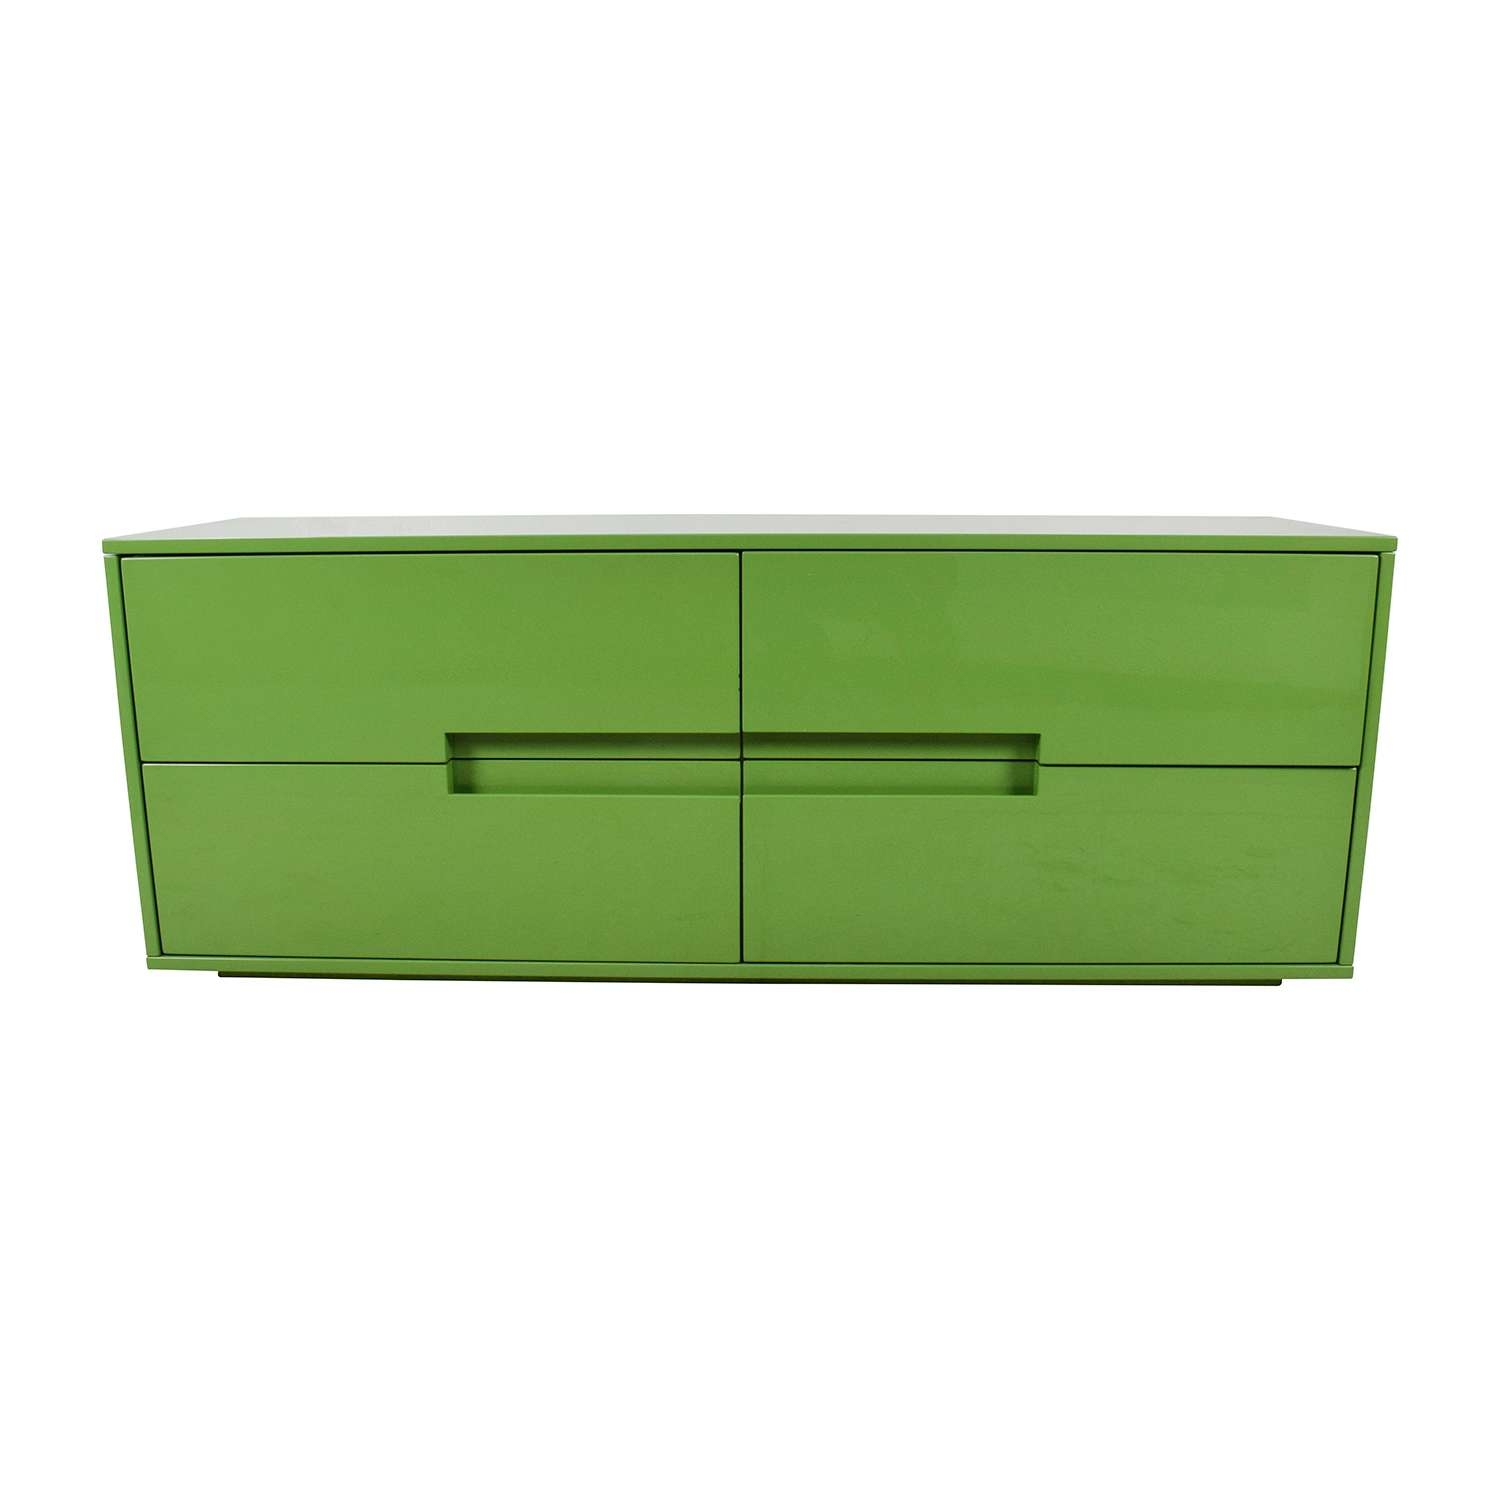 57% Off – Cb2 Cb2 Latitude Low Dresser 4 Drawer / Storage Inside Low Sideboards (View 2 of 20)